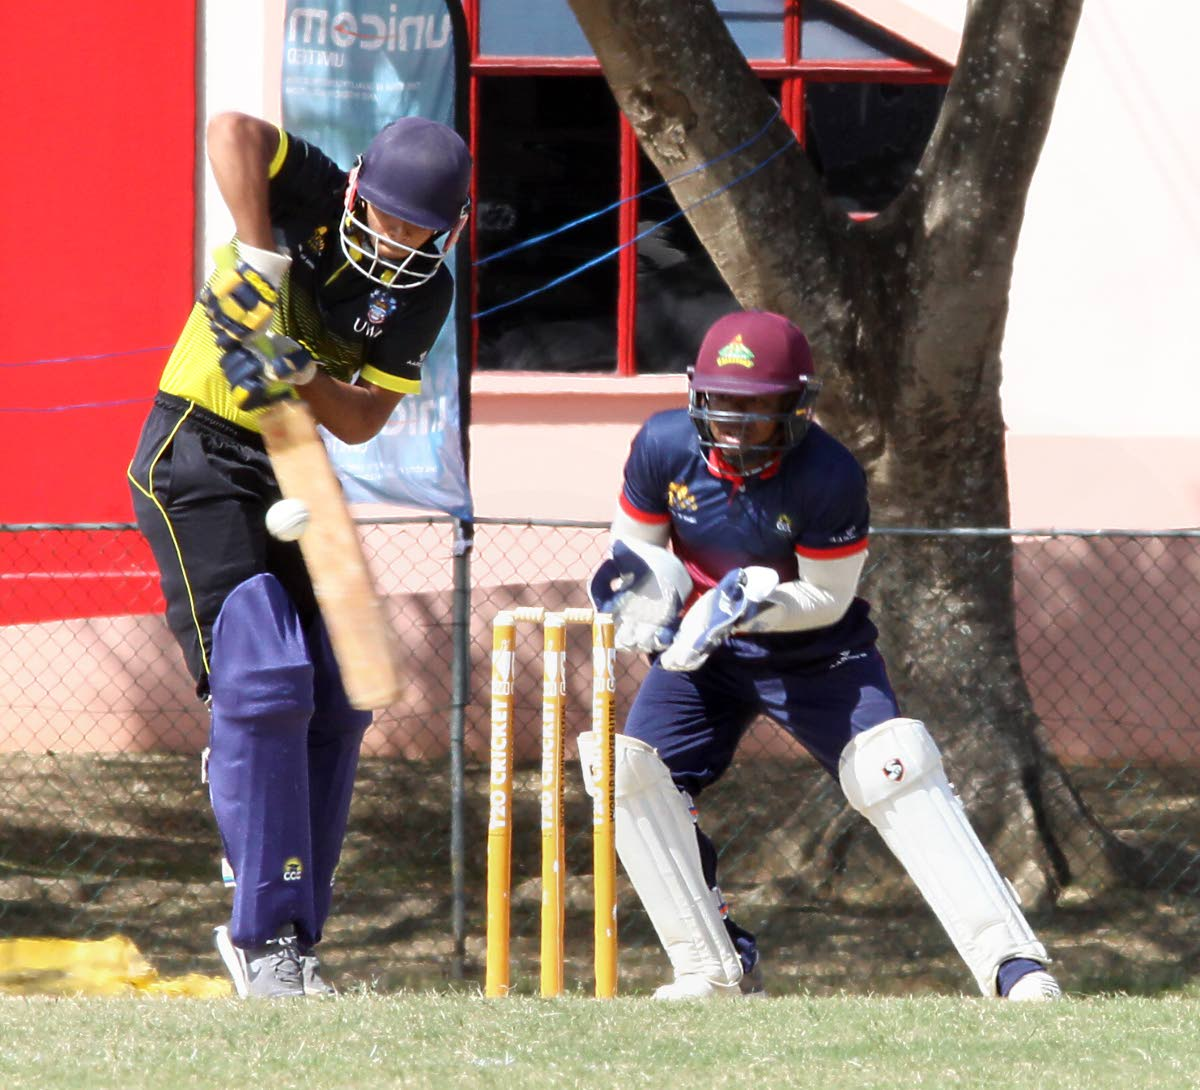 UWI's Sachin Seecharan plays a shot off his legs against Combined Campuses and Colleges in a UWI World Universities T20 match yesterday. PHOTO BY ANGELO MARCELLE